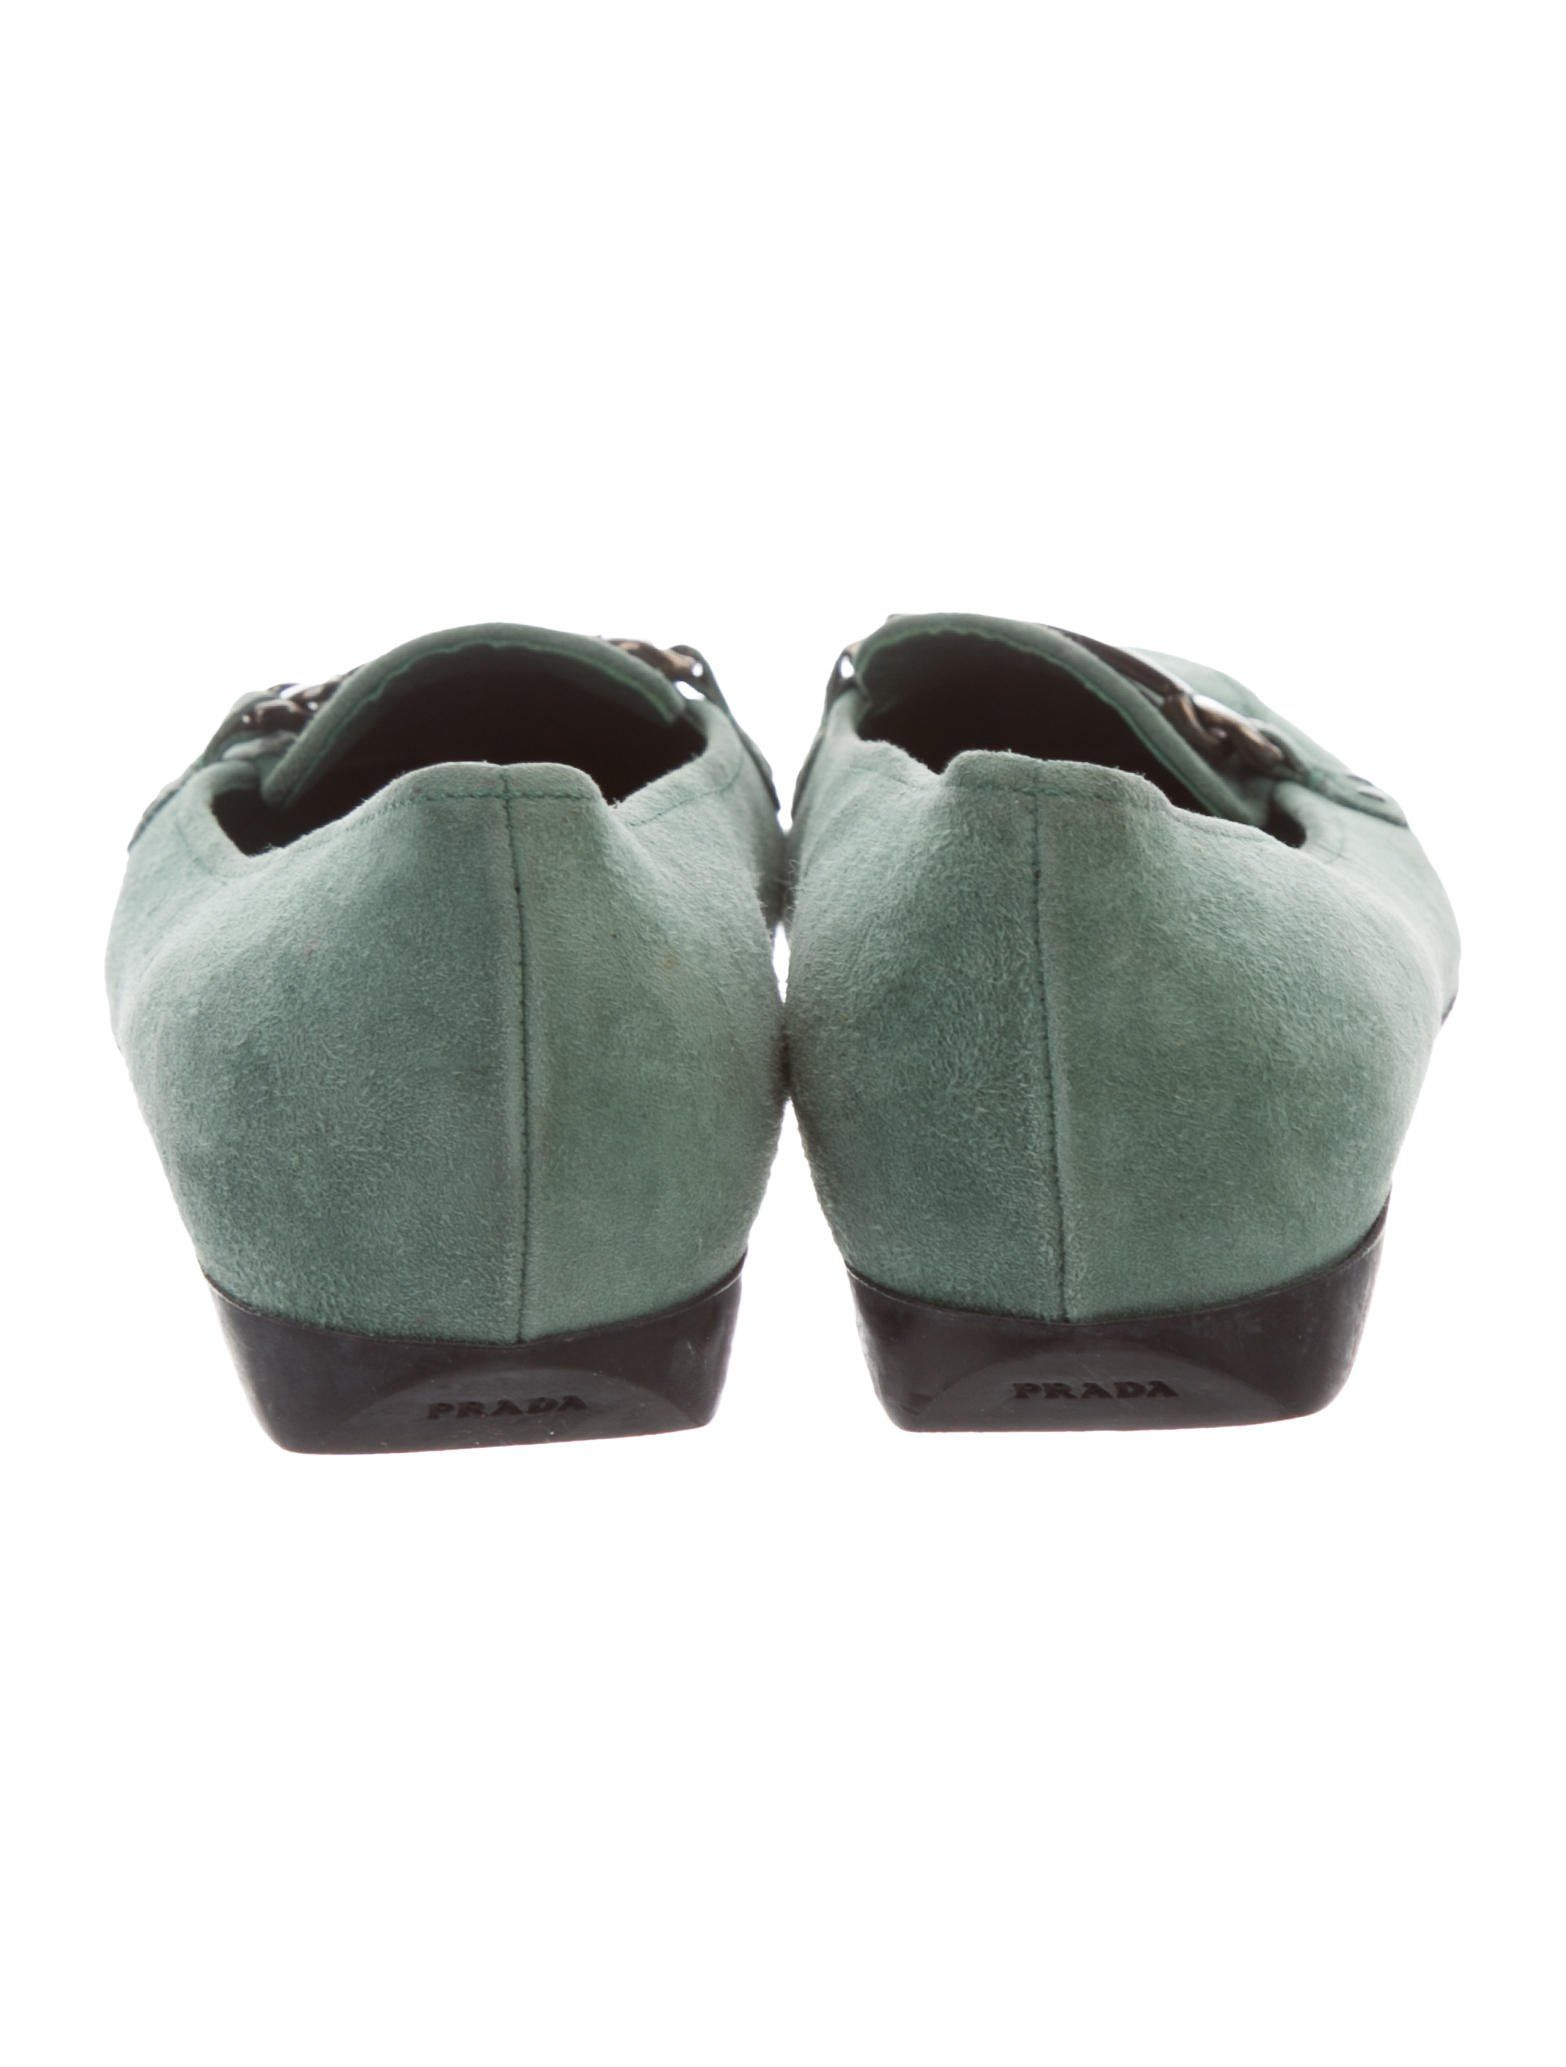 baa9f275411 Jade suede Prada square-toe loafers with silver-tone logo accent at vamps  and